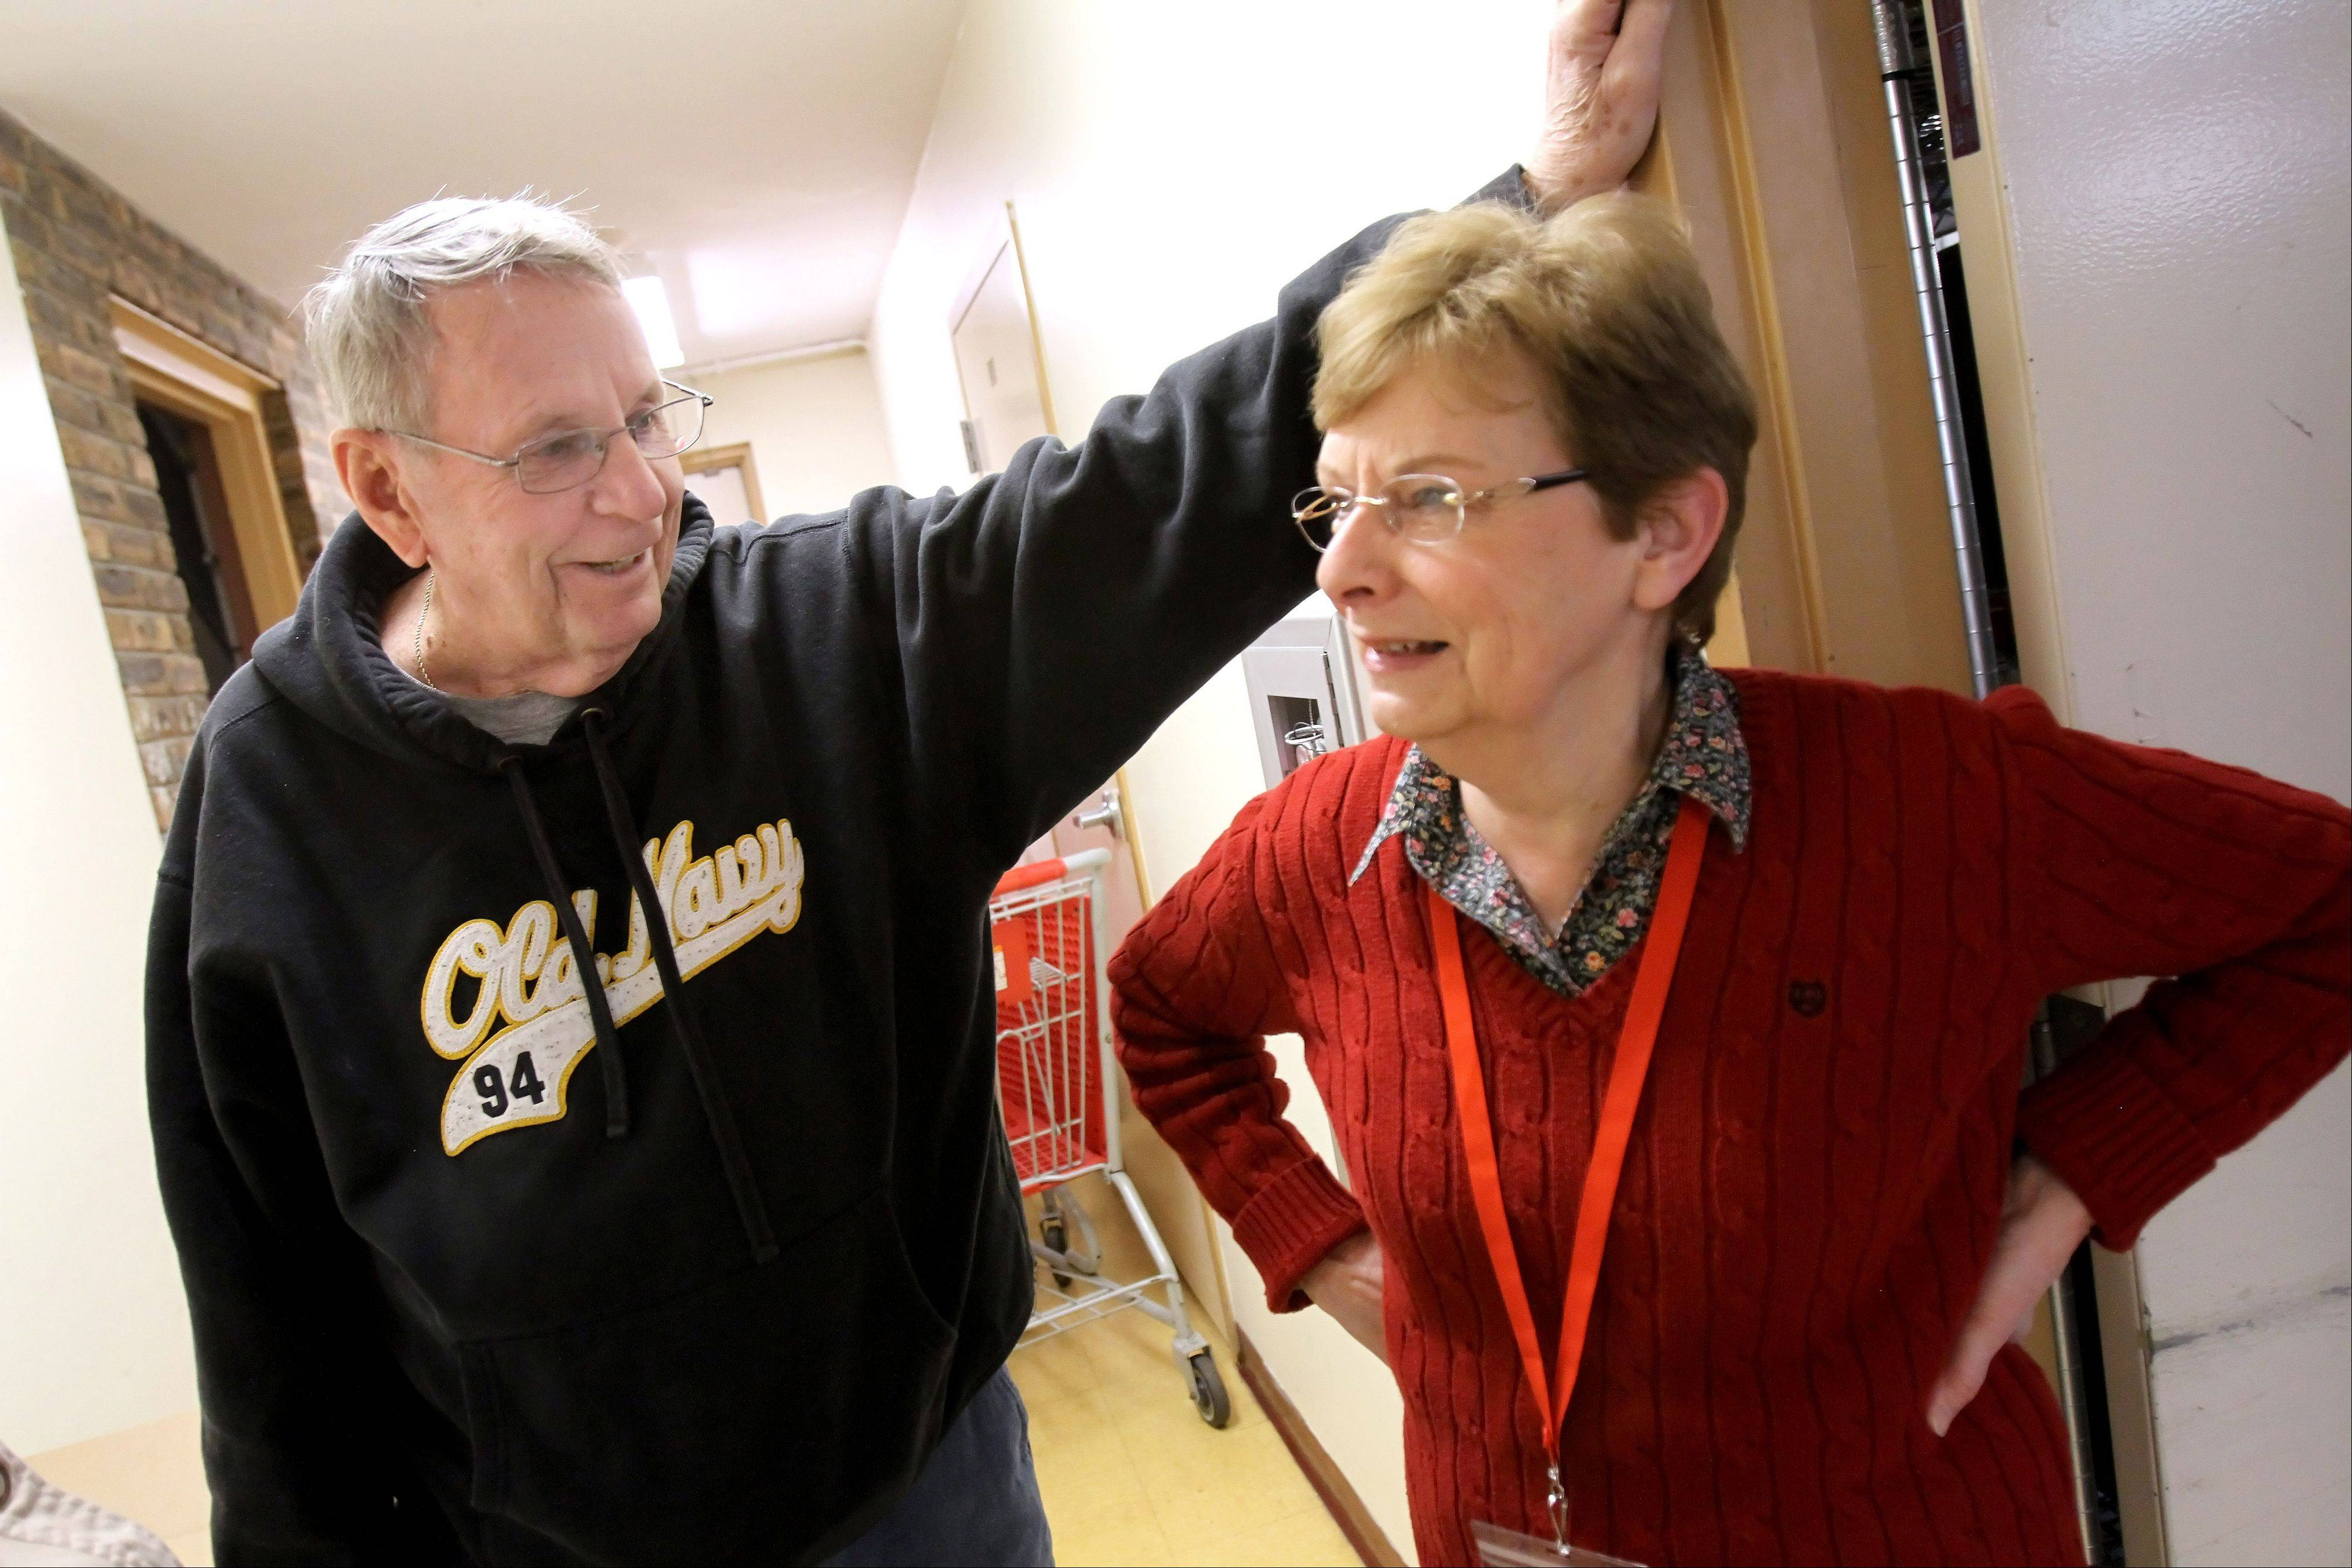 Don McGowan met his second wife, Mary Leah Prazak, while volunteering at the People's Resource Center in Wheaton.